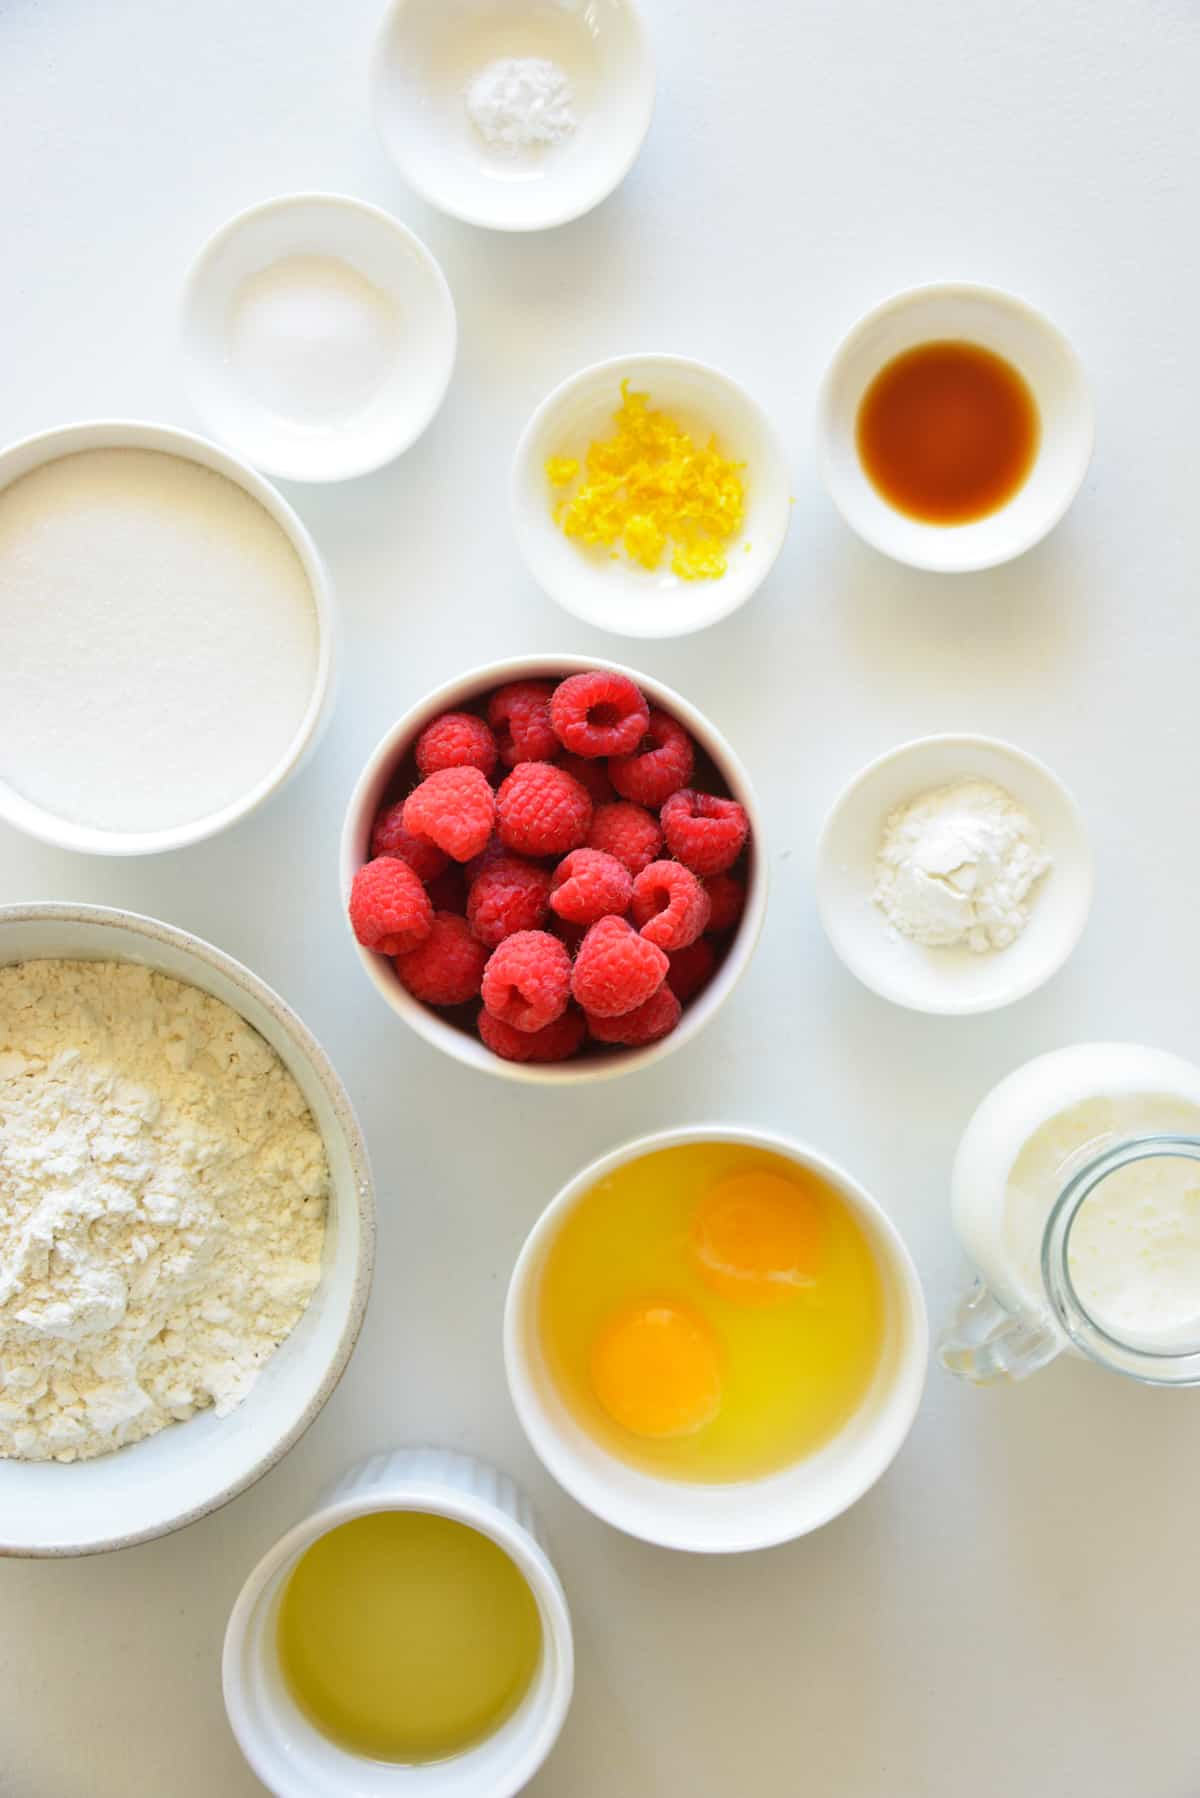 Ingredients needed to make Raspberry Muffins